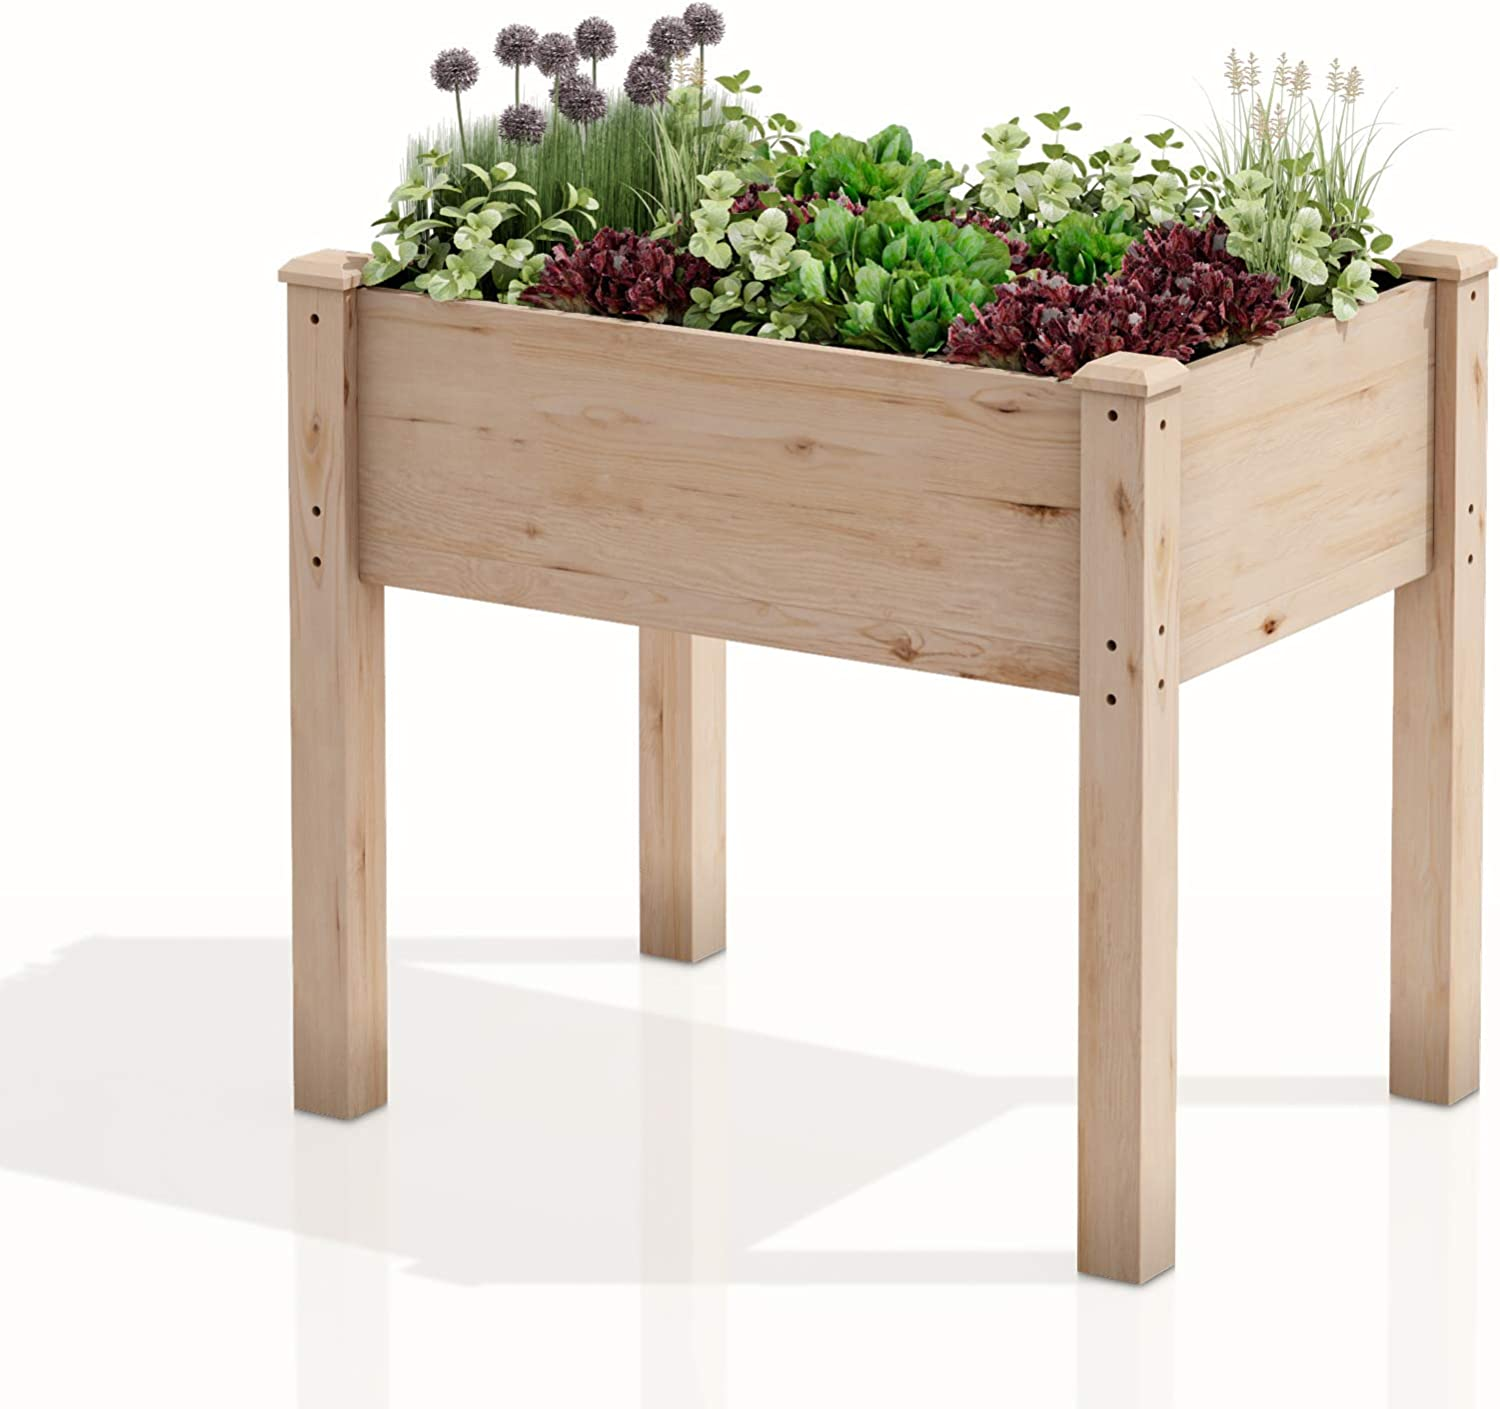 "AMZFINE Heavy Duty Wooden Raised Garden Bed Kit, Solid Wood Elevated Planter Box -34"" L x 18"" W x 30"" H, Natural"